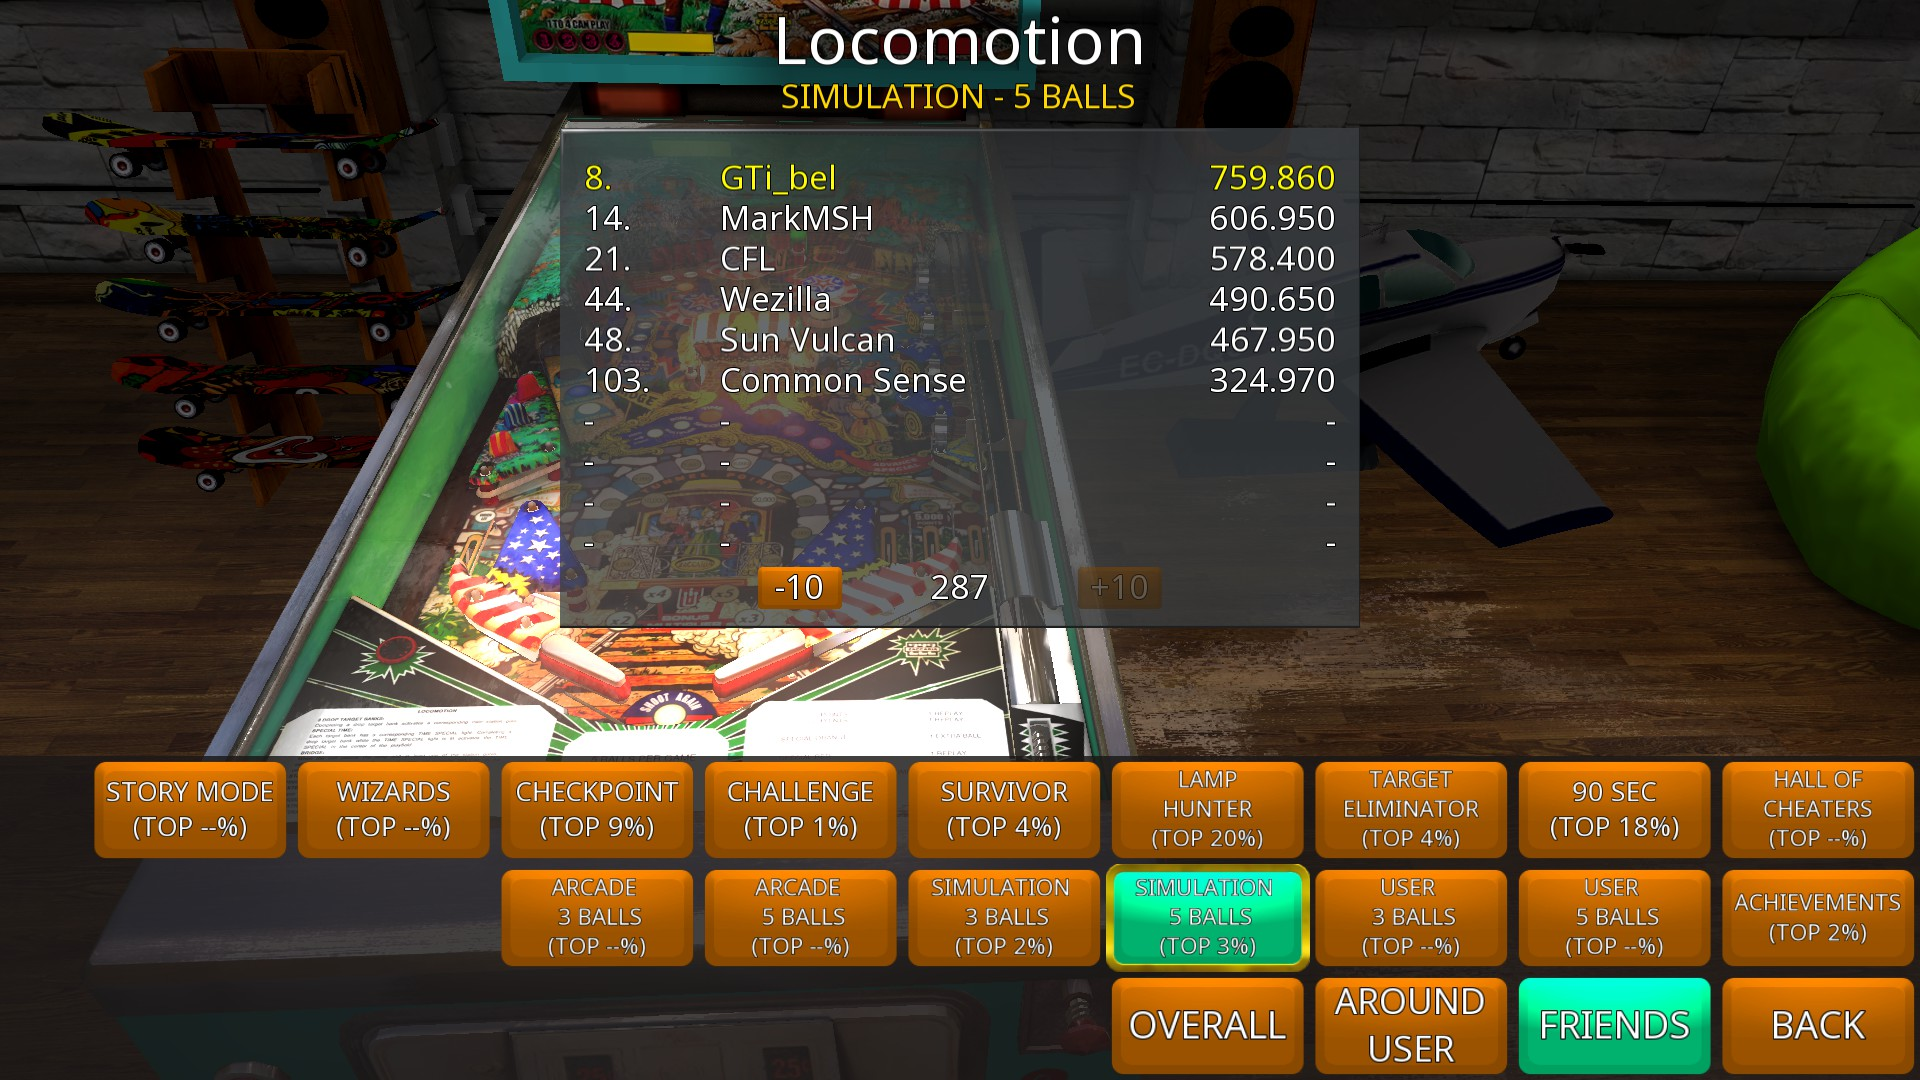 Zaccaria Pinball: Locomotion [5 balls] 759,860 points